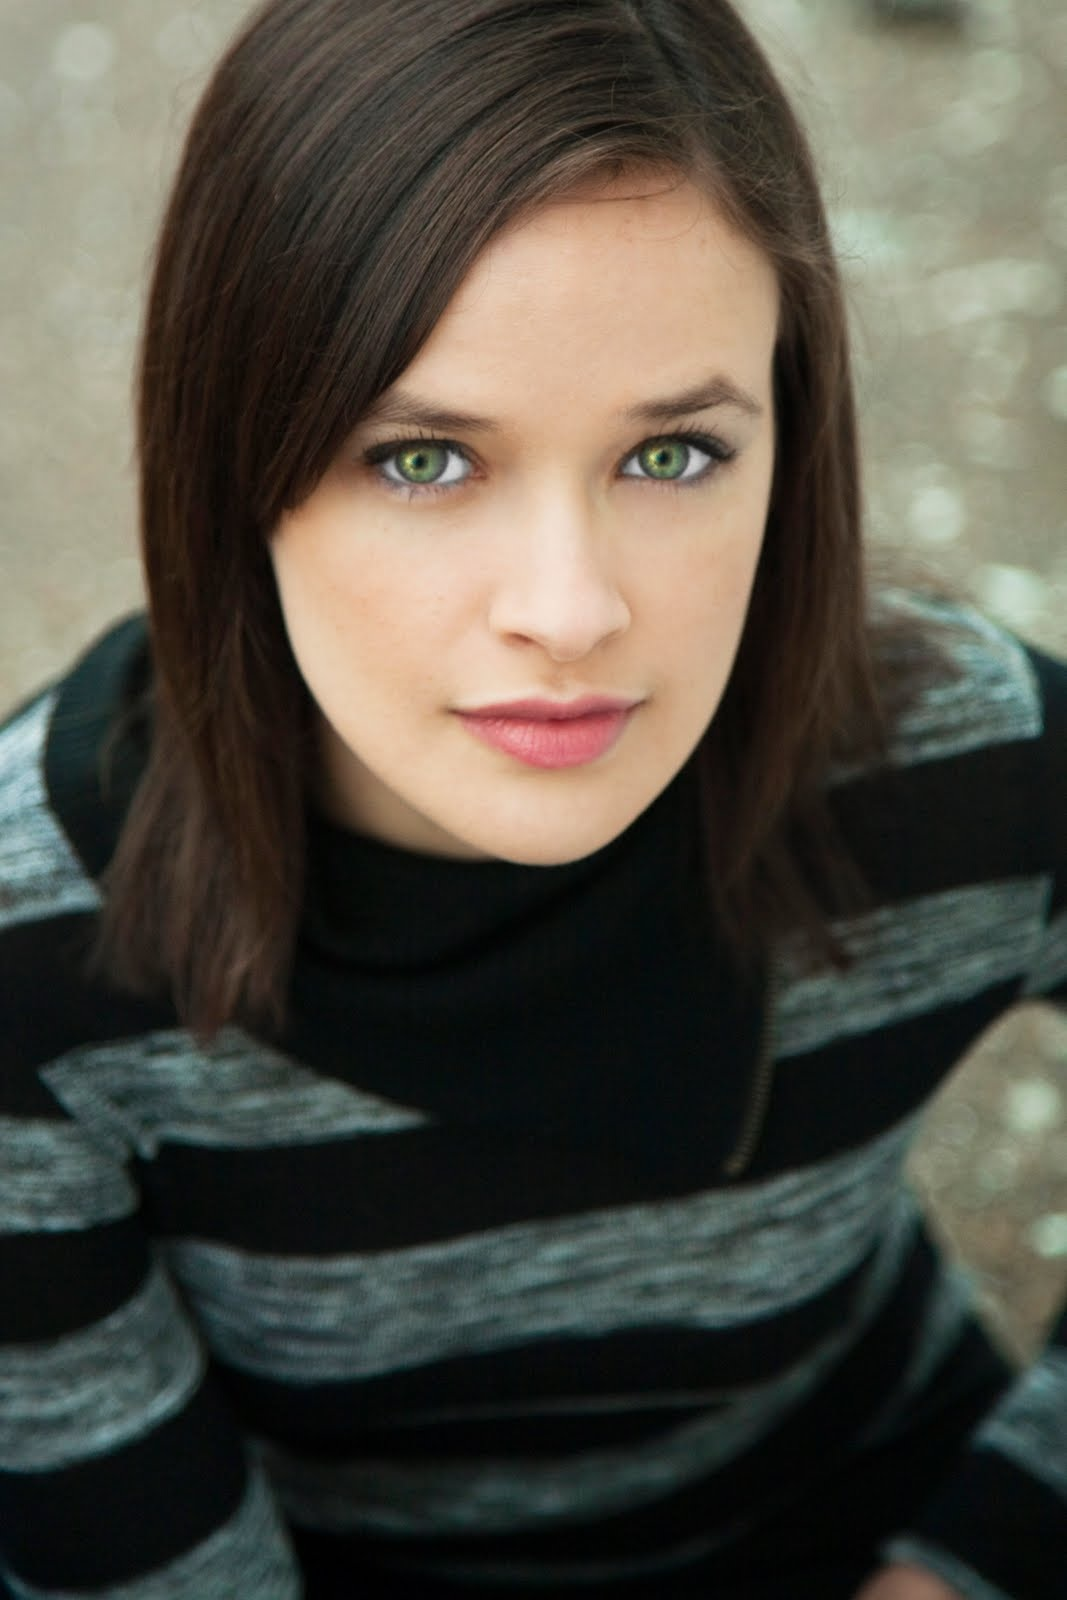 brina palencia voicesbrina palencia voices, brina palencia moxxi, brina palencia, brina palencia ciel, brina palencia voice actor, brina palencia instagram, brina palencia juvia, brina palencia interview, brina palencia borderlands 2, brina palencia holo, brina palencia walking dead, brina palencia feet, brina palencia black butler, brina palencia behind the voice actors, brina palencia twitter, brina palencia imdb, brina palencia anime, brina palencia singing, brina palencia and j michael tatum, brina palencia ciel voice